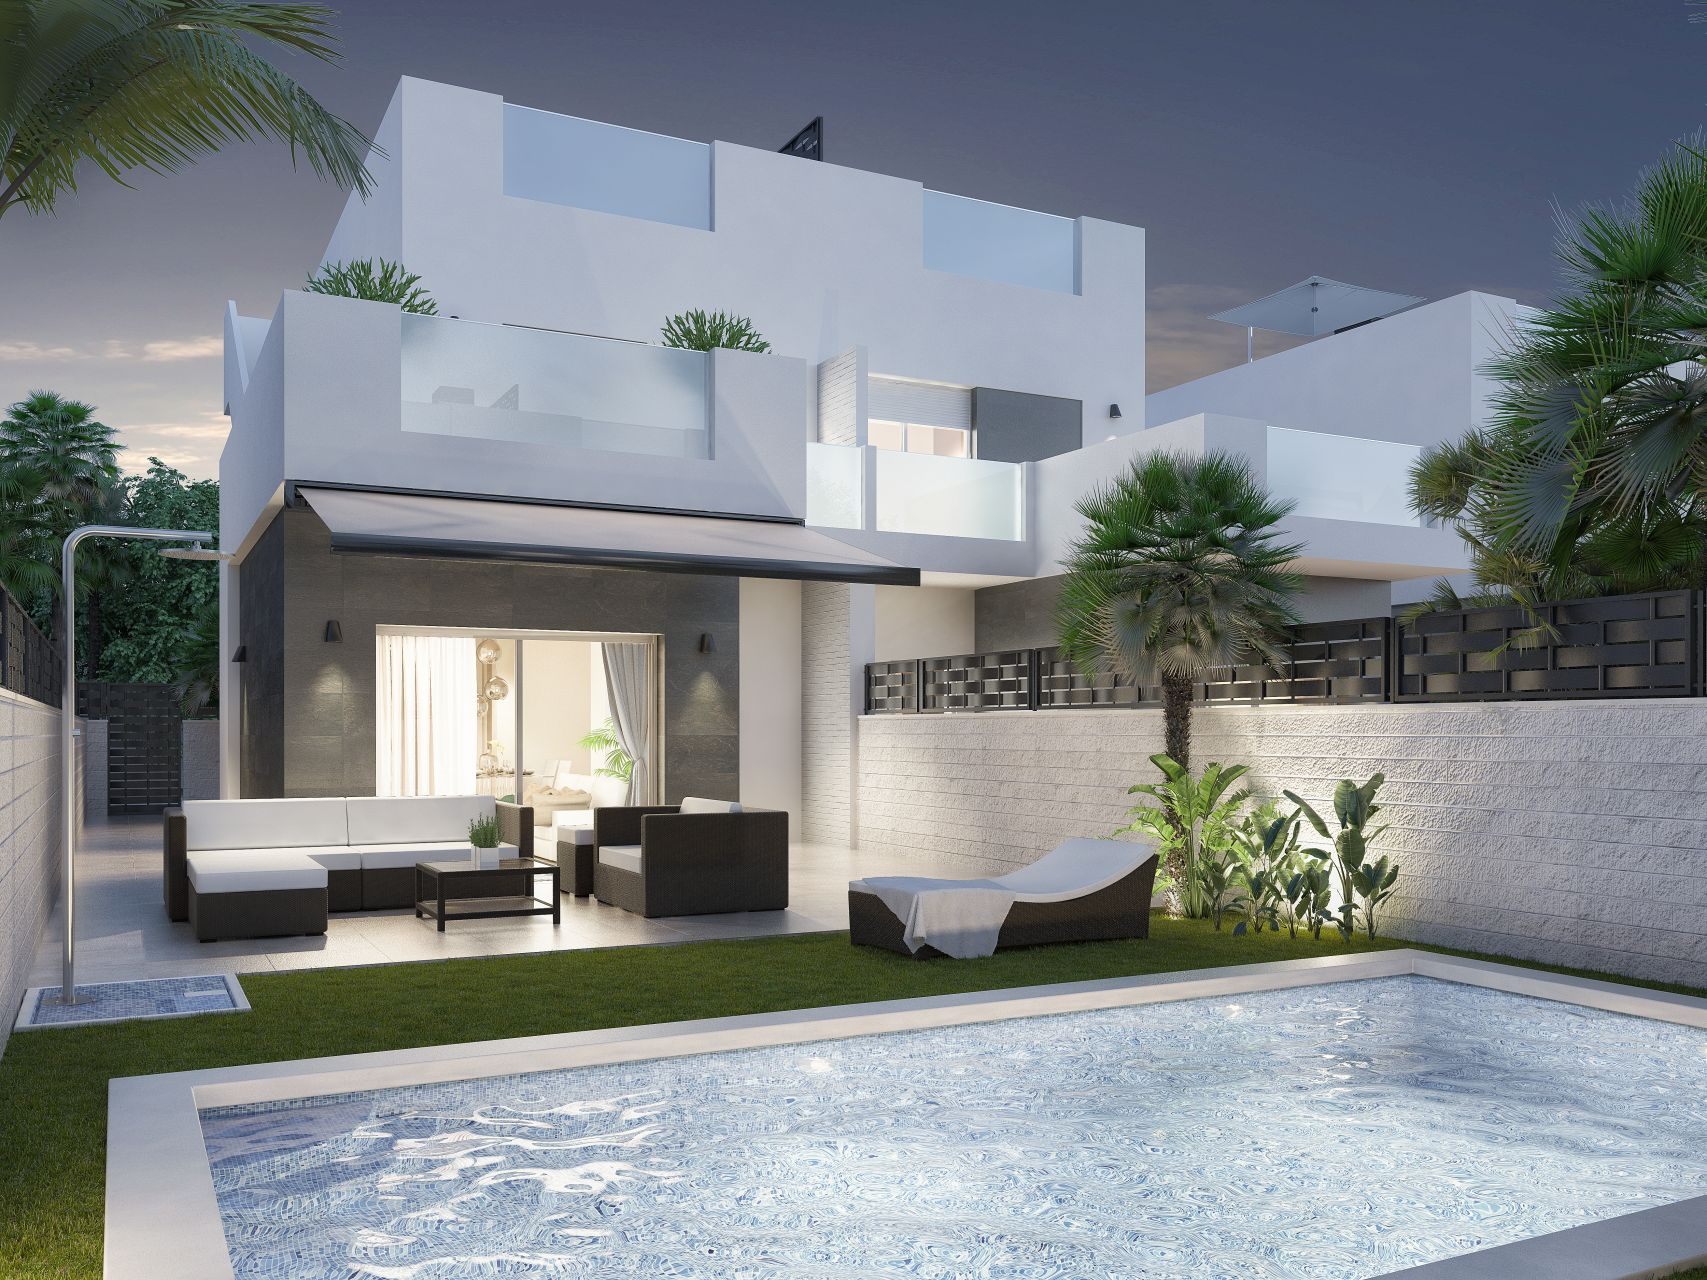 Apartments and villas luxury in Ciudad Quesada 2